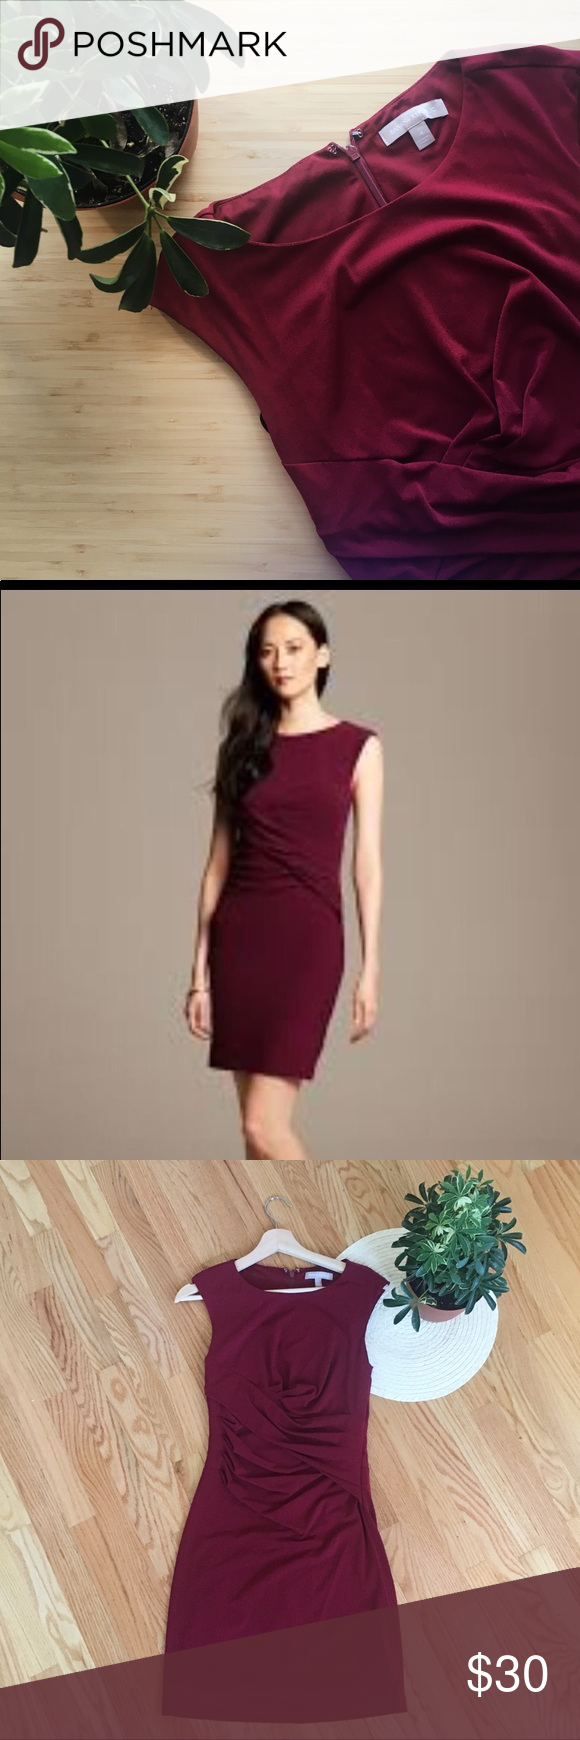 e41b757c2a9 Banana Republic - Burgundy Knit Slink Dress (4) Banana Republic - Burgundy  Knit Slink